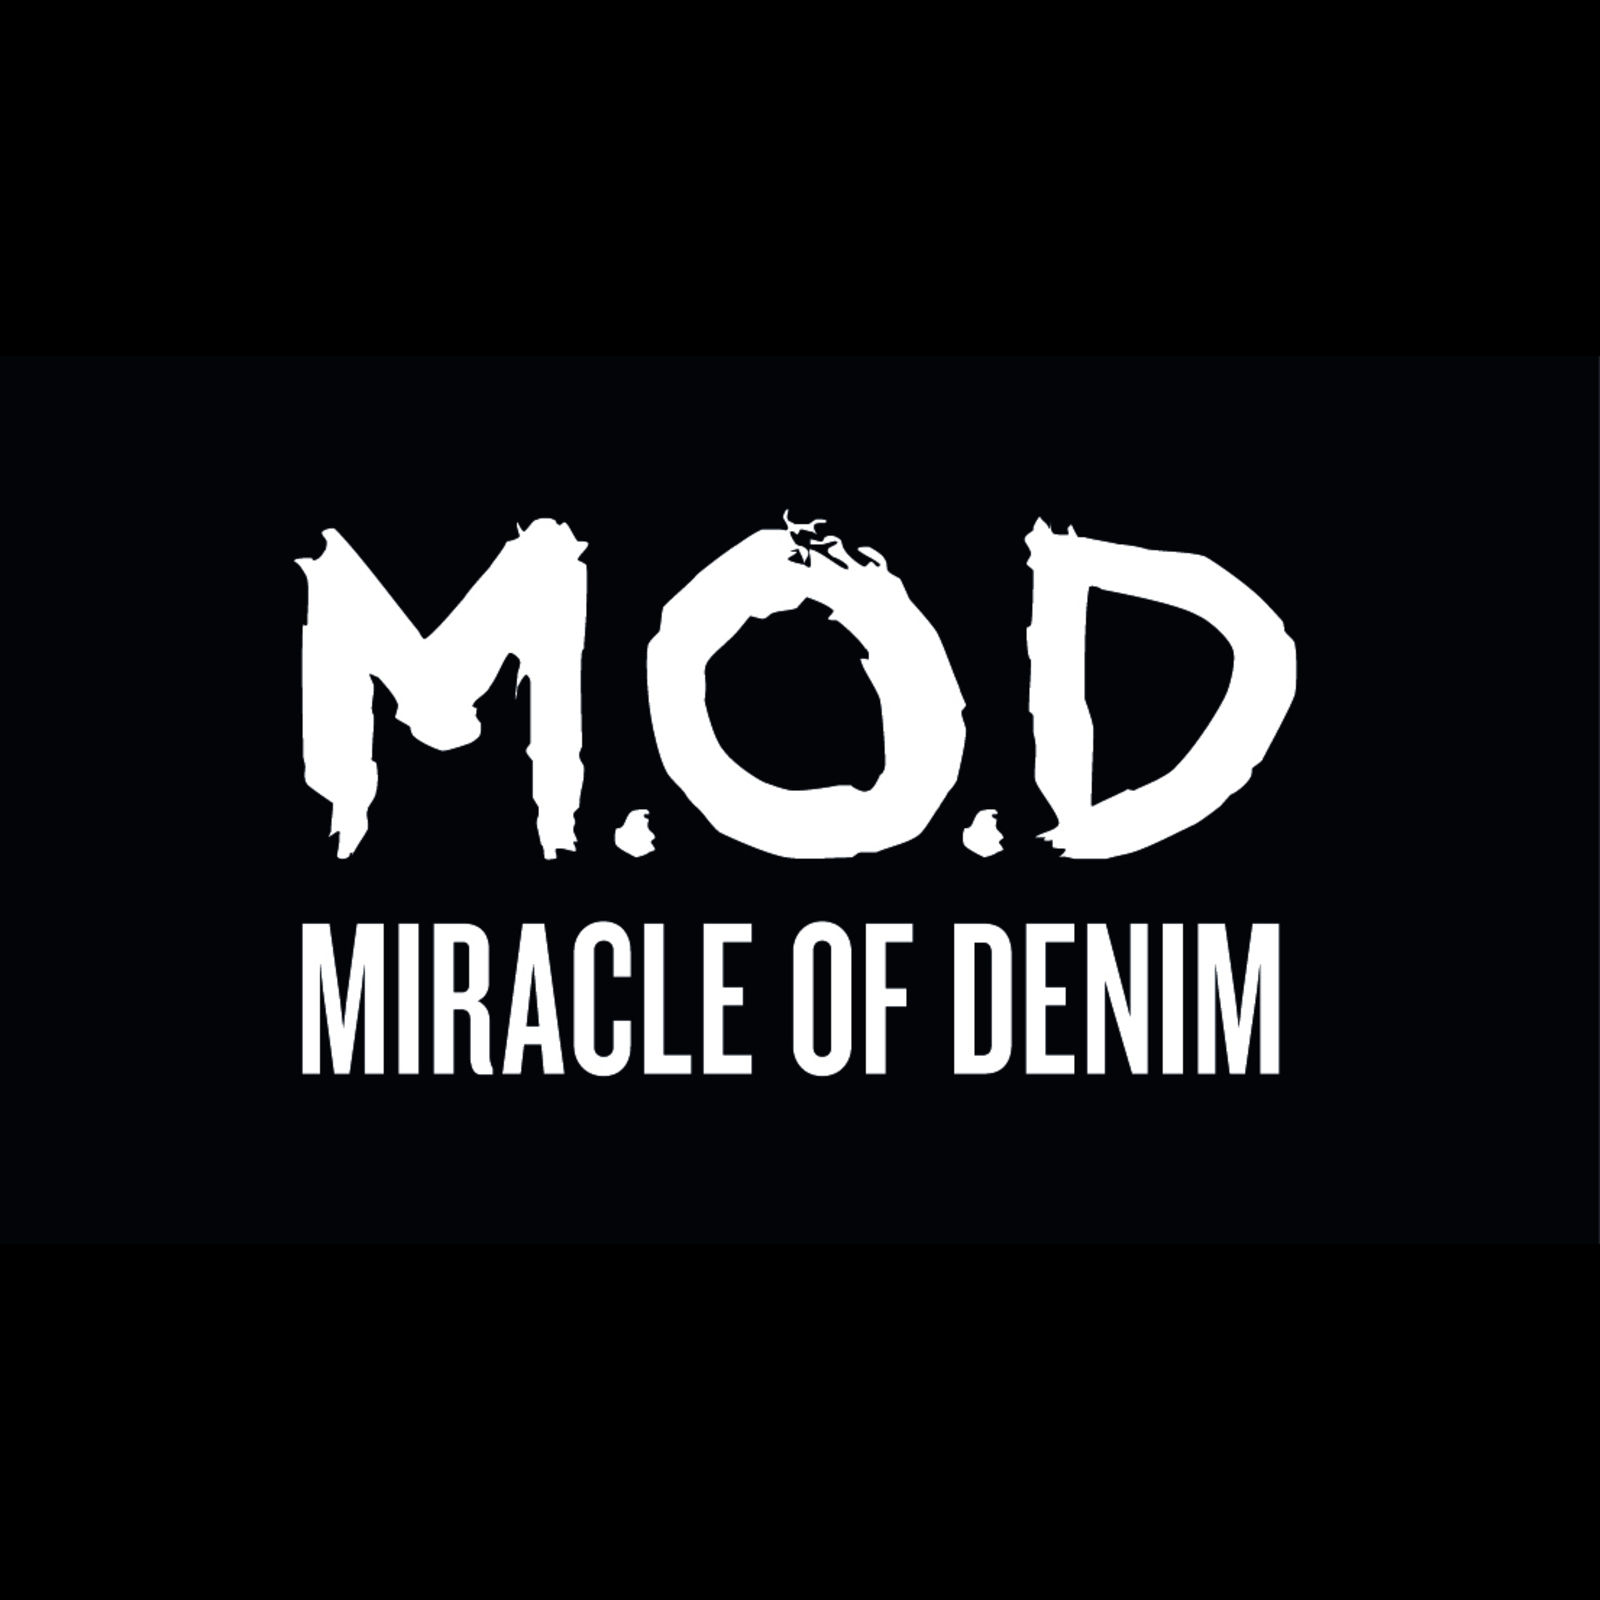 M.O.D. MIRACLE OF DENIM (Bild 1)